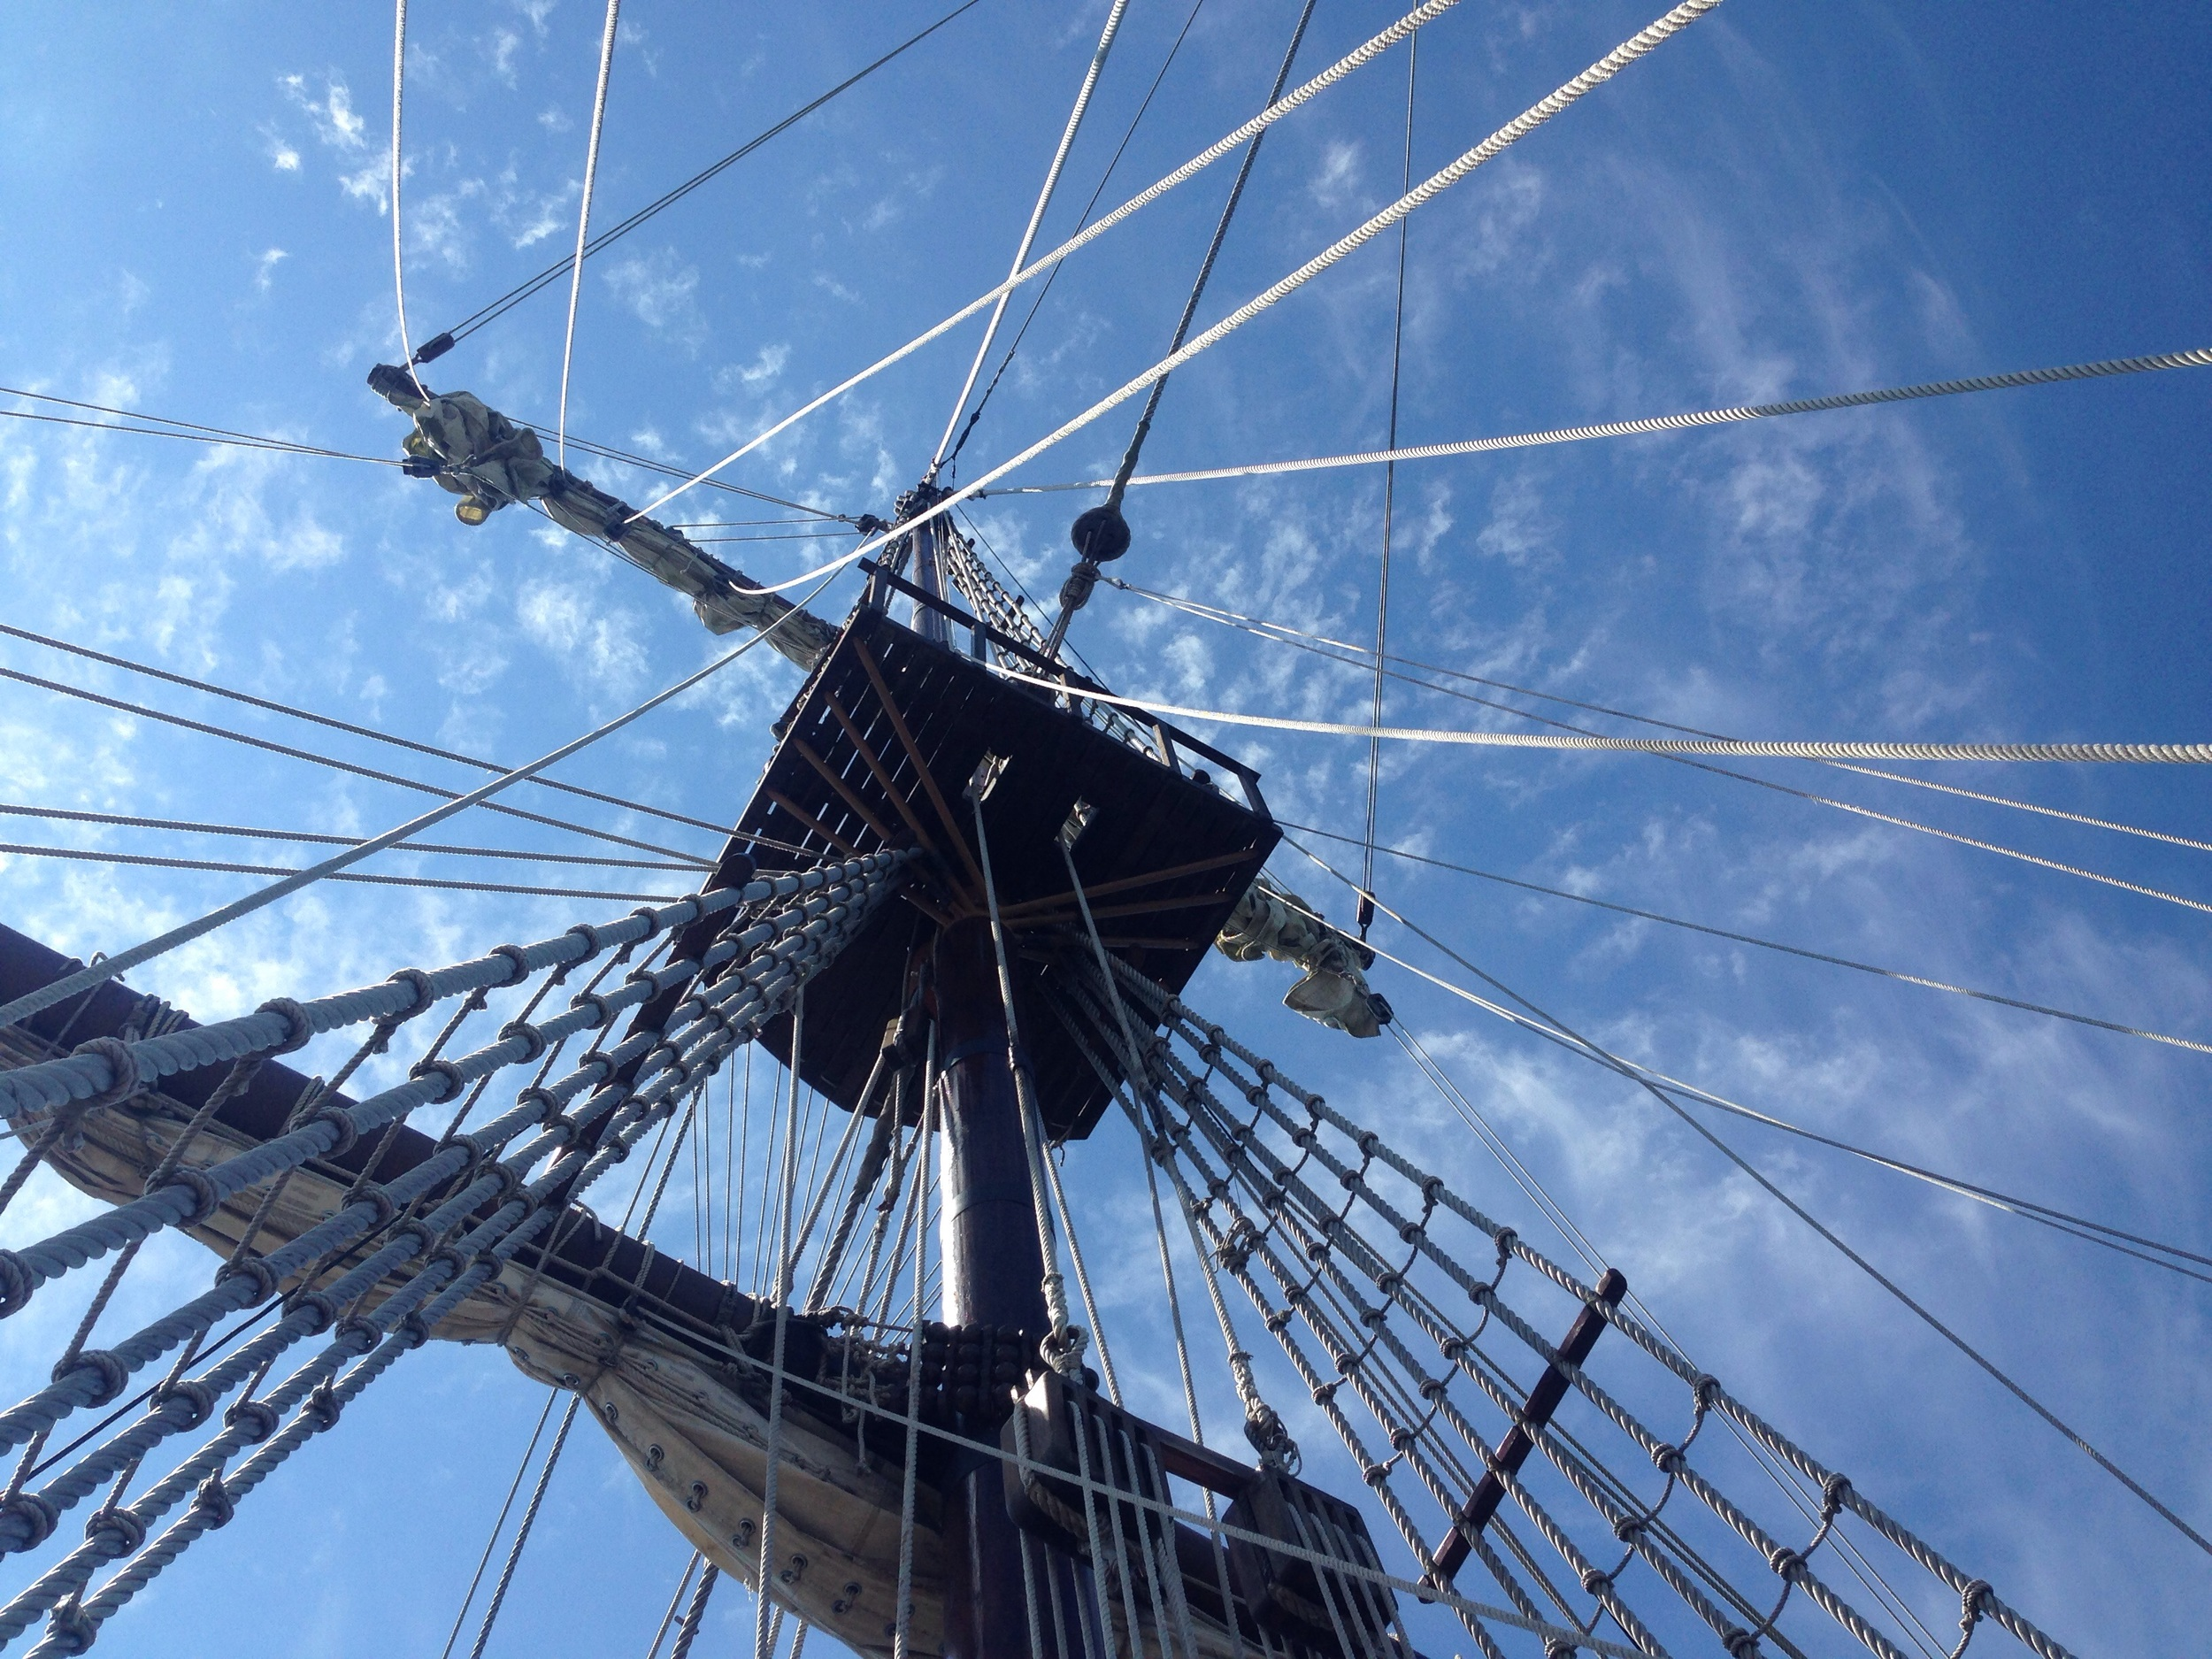 Rigging lines and sails of a Tall Ship in Portsmouth, NH